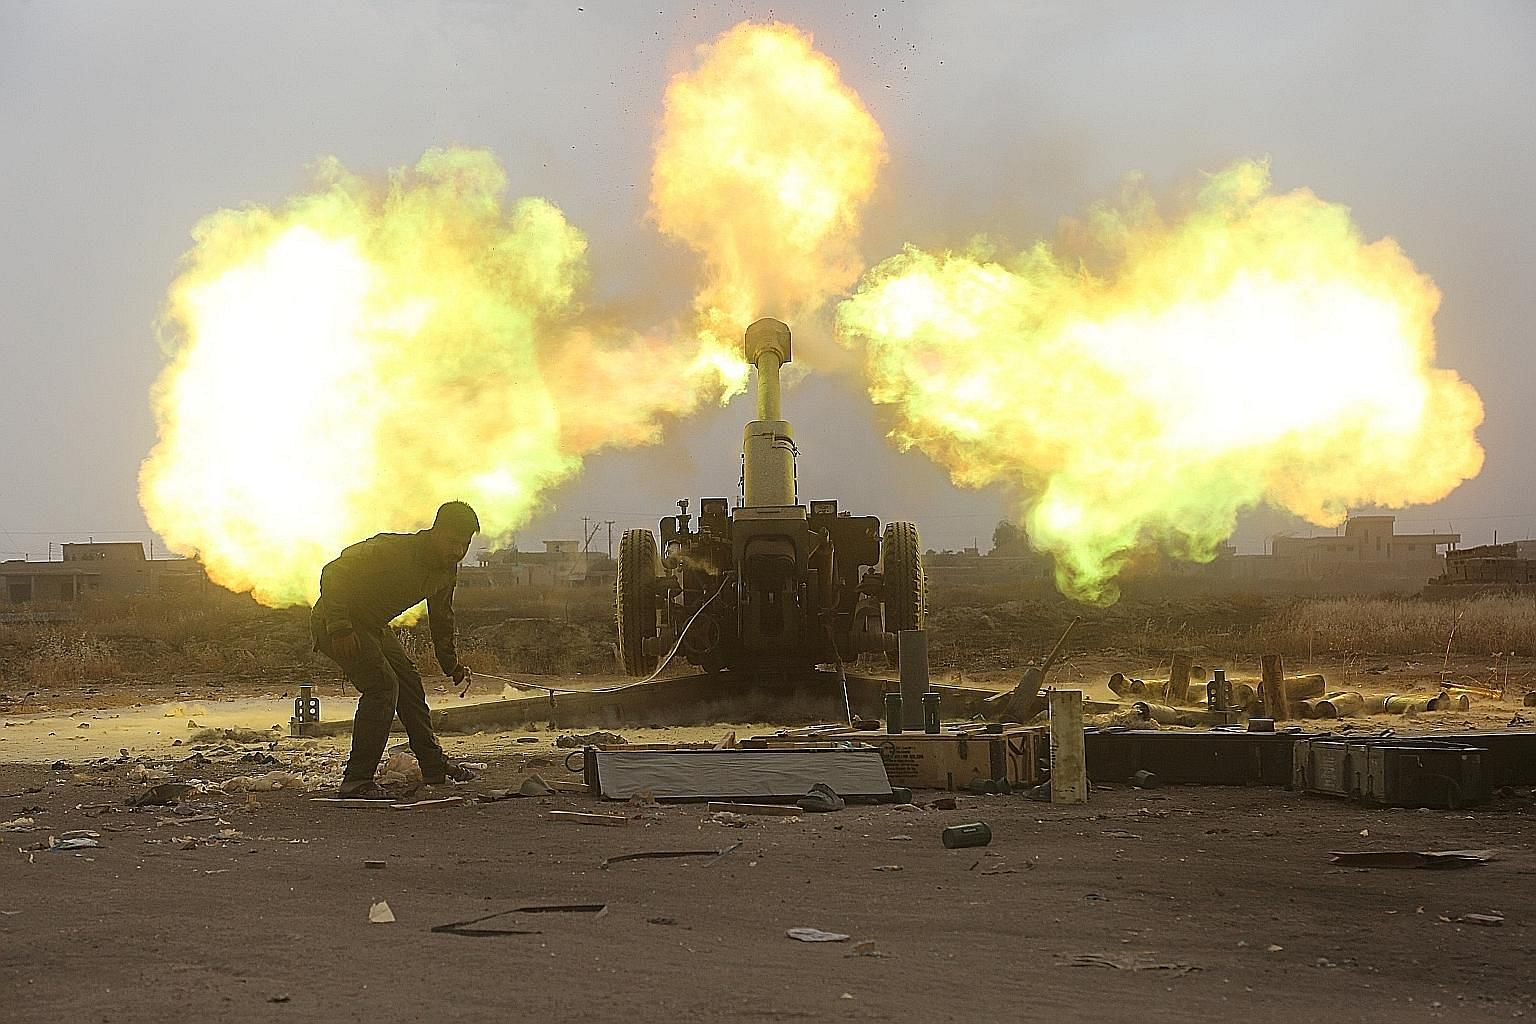 Popular Mobilisation Forces personnel firing at ISIS militants during a battle on the outskirts of Al-Ba'aj, west of Mosul, on Friday. The United States-backed offensive on Mosul, now in its eighth month, has taken longer than planned as the militant